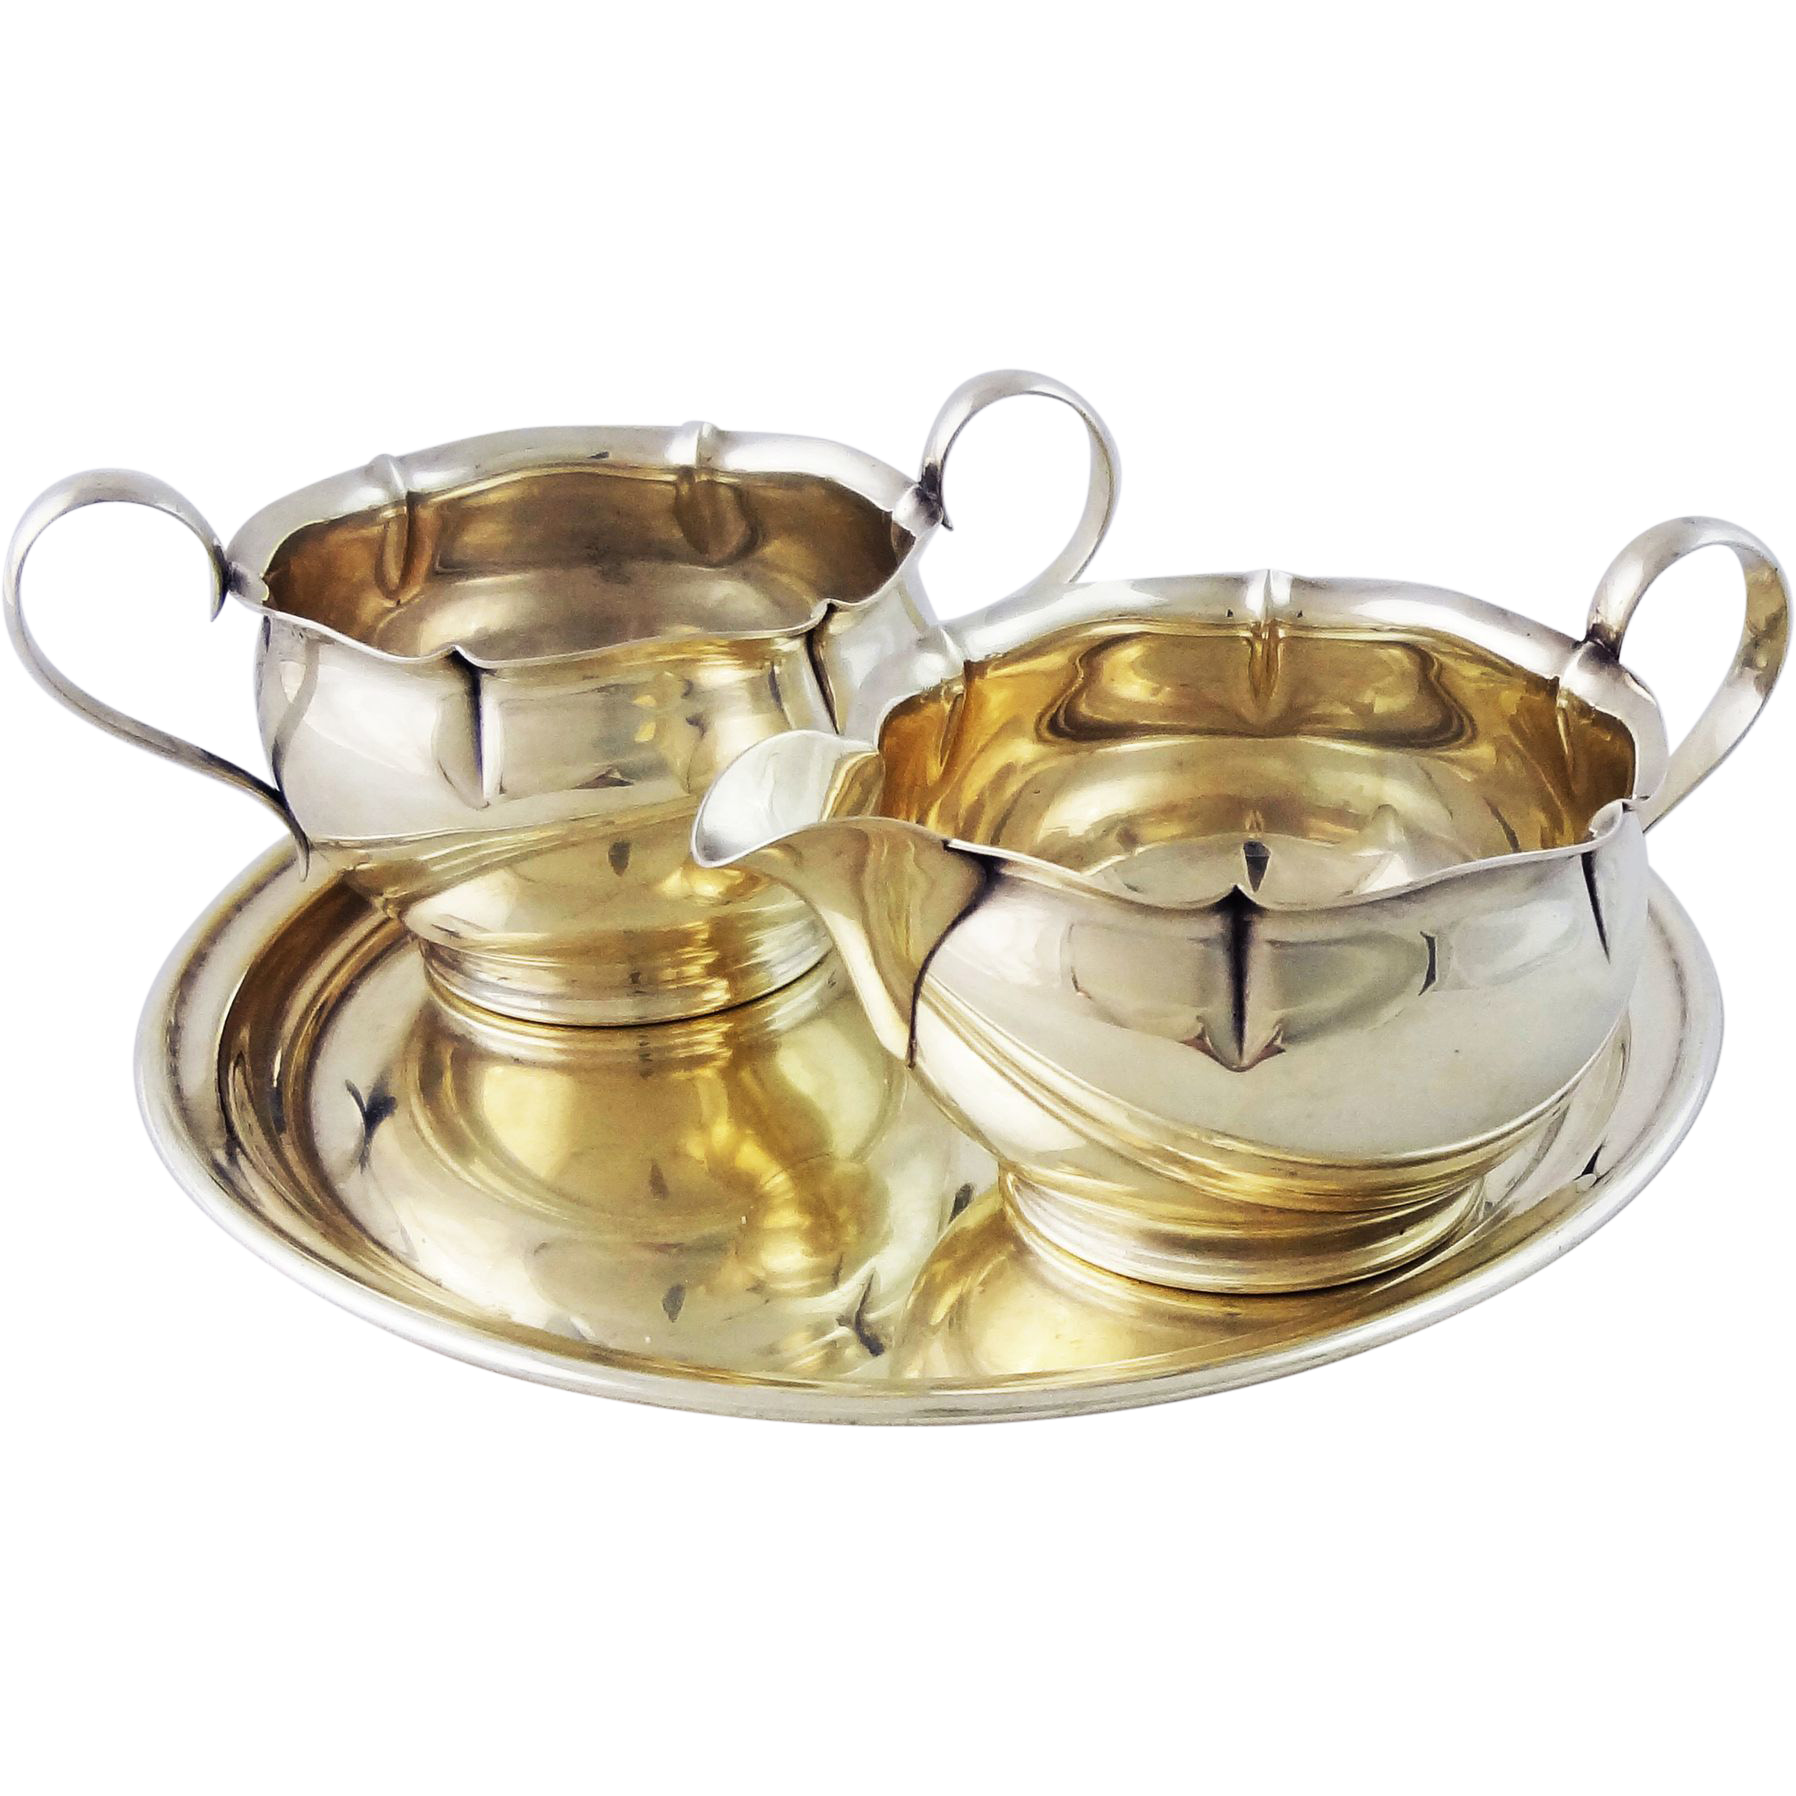 Gorham Sterling Creamer and Sugar Bowl with Circular Raised Border Sterling Tray - 20th Century, USA